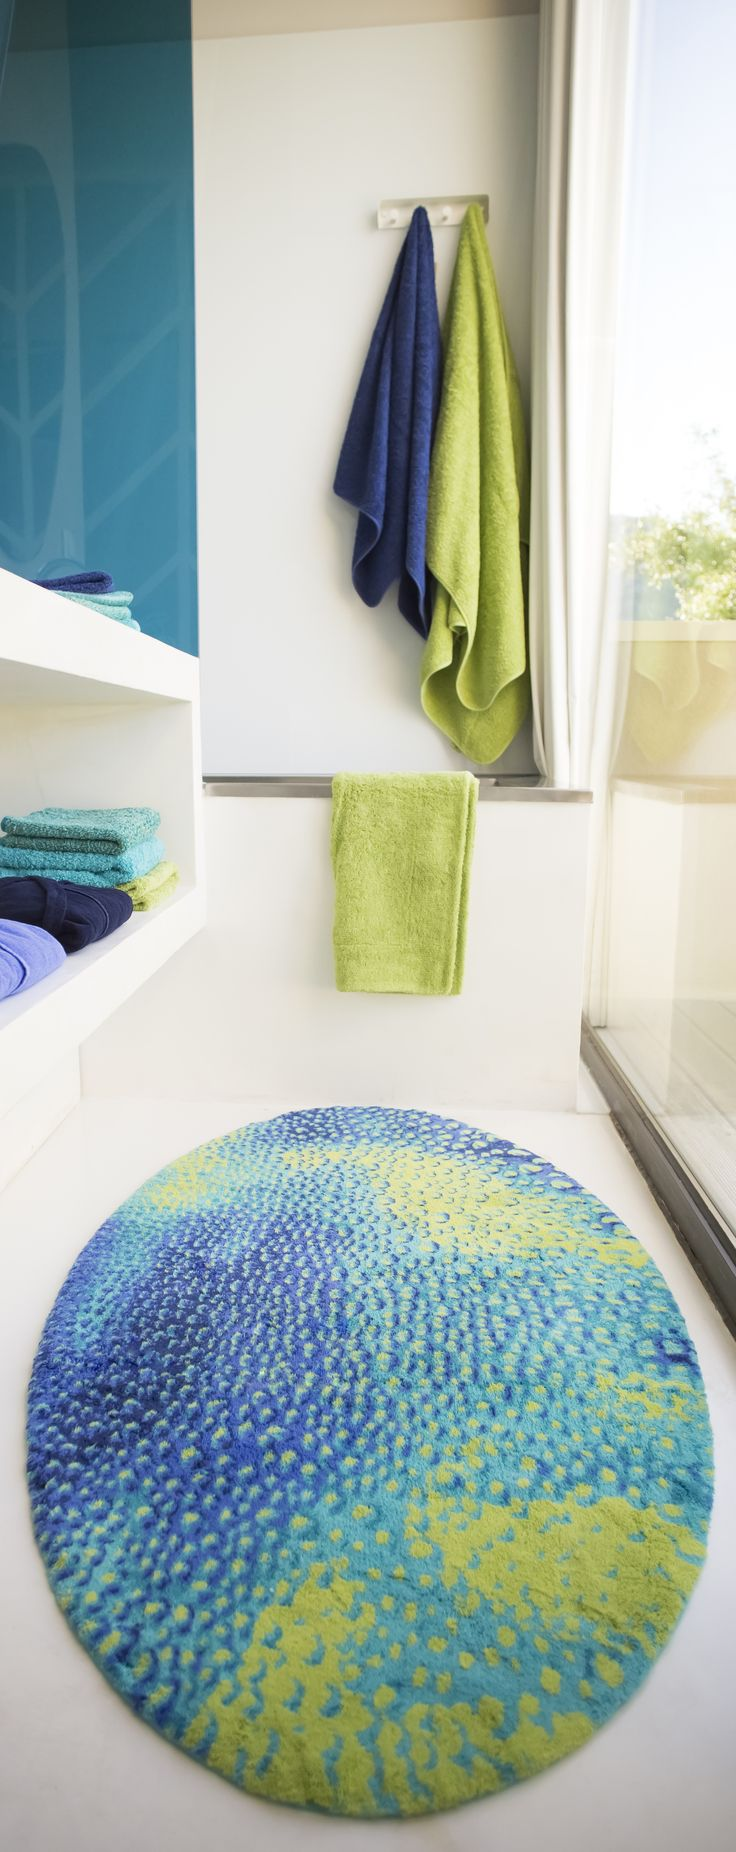 Abyss Canada Habidecor Canadian Super Pile Plush Rugs Towels Finest European Distributor Supplier